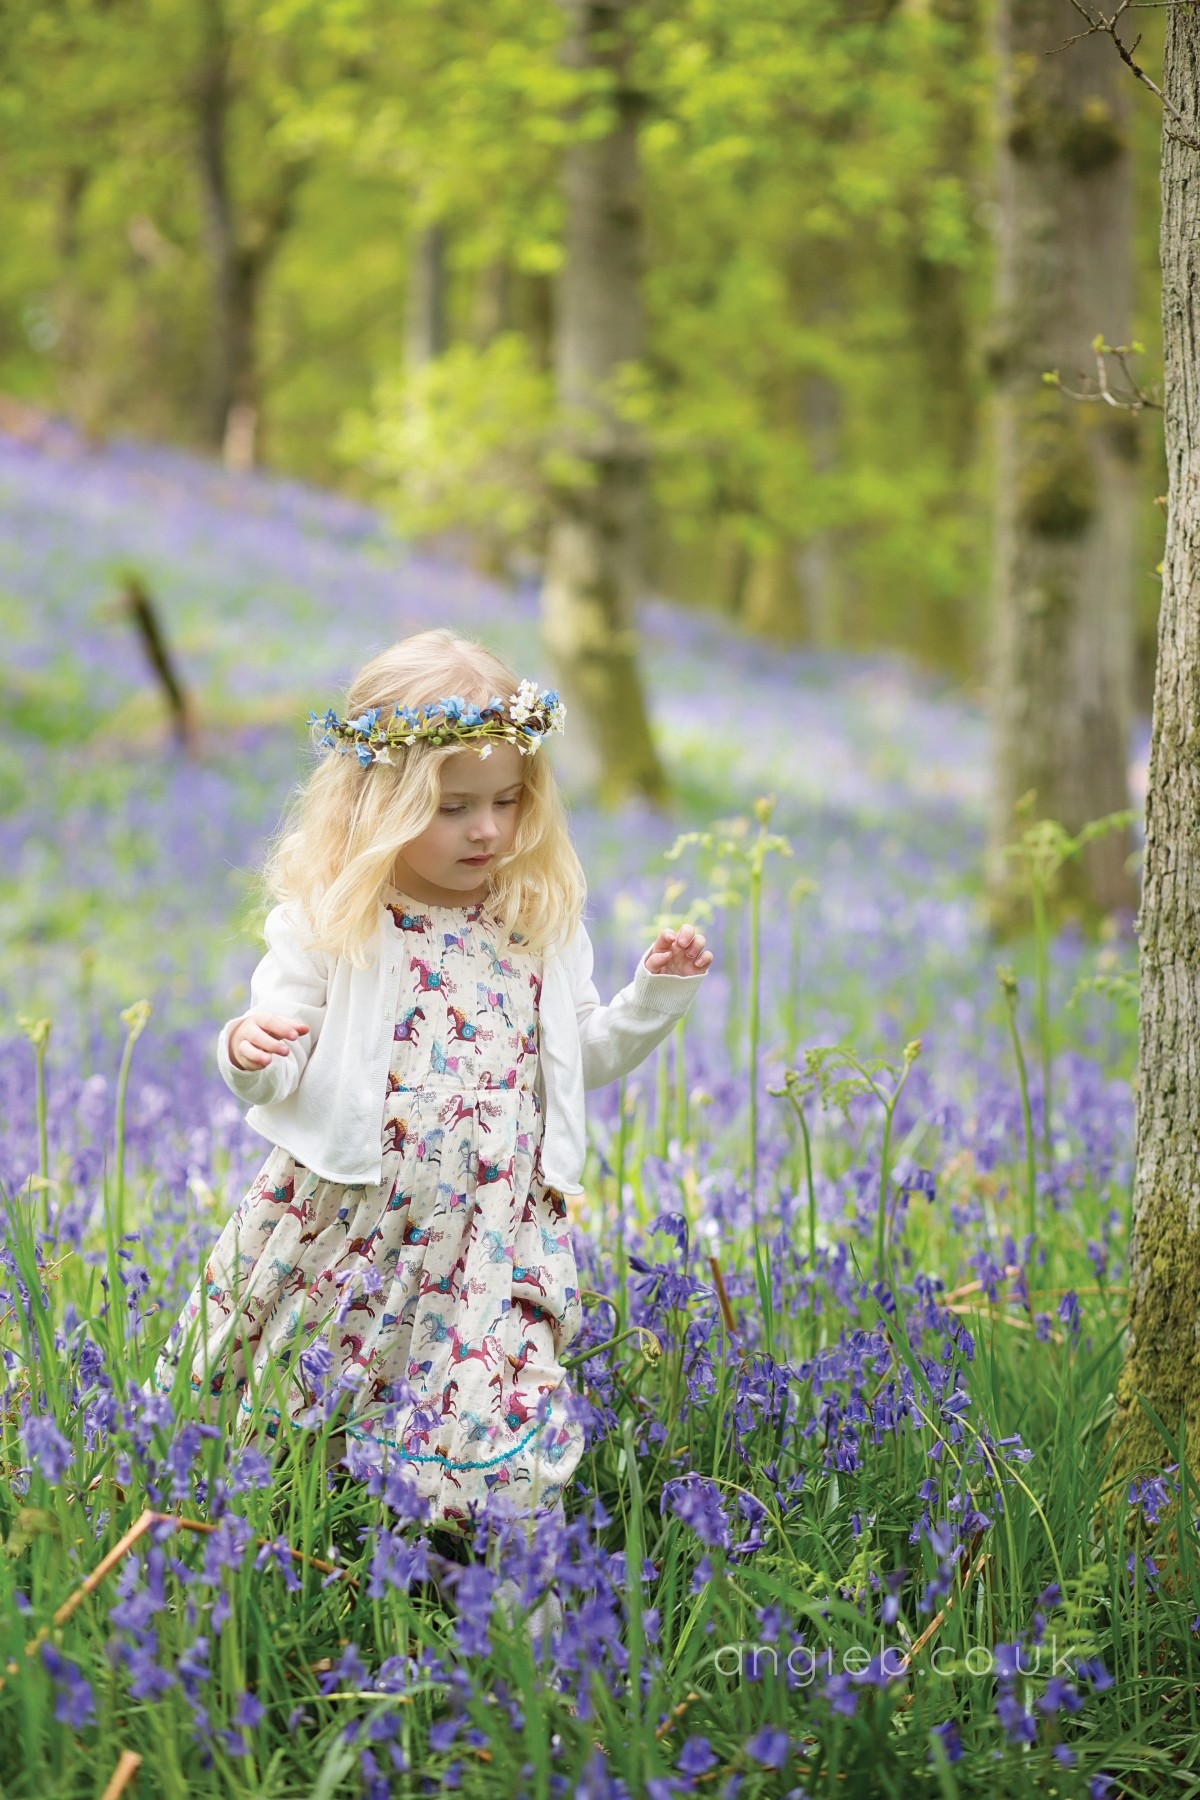 Taking a stroll through the field of bluebells!